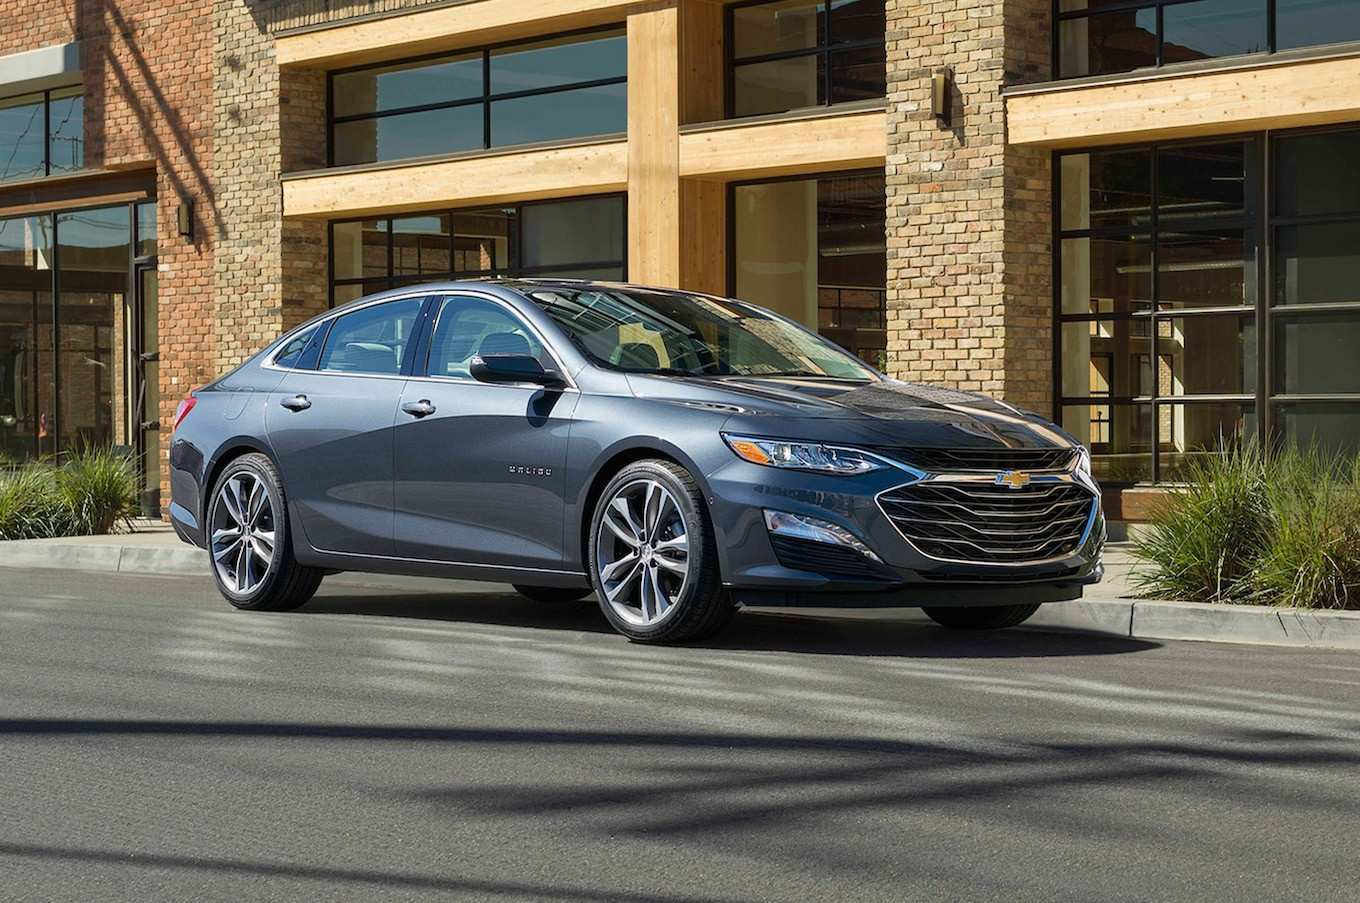 65 New The Chevrolet Malibu 2019 Price Rumors Spesification with The Chevrolet Malibu 2019 Price Rumors